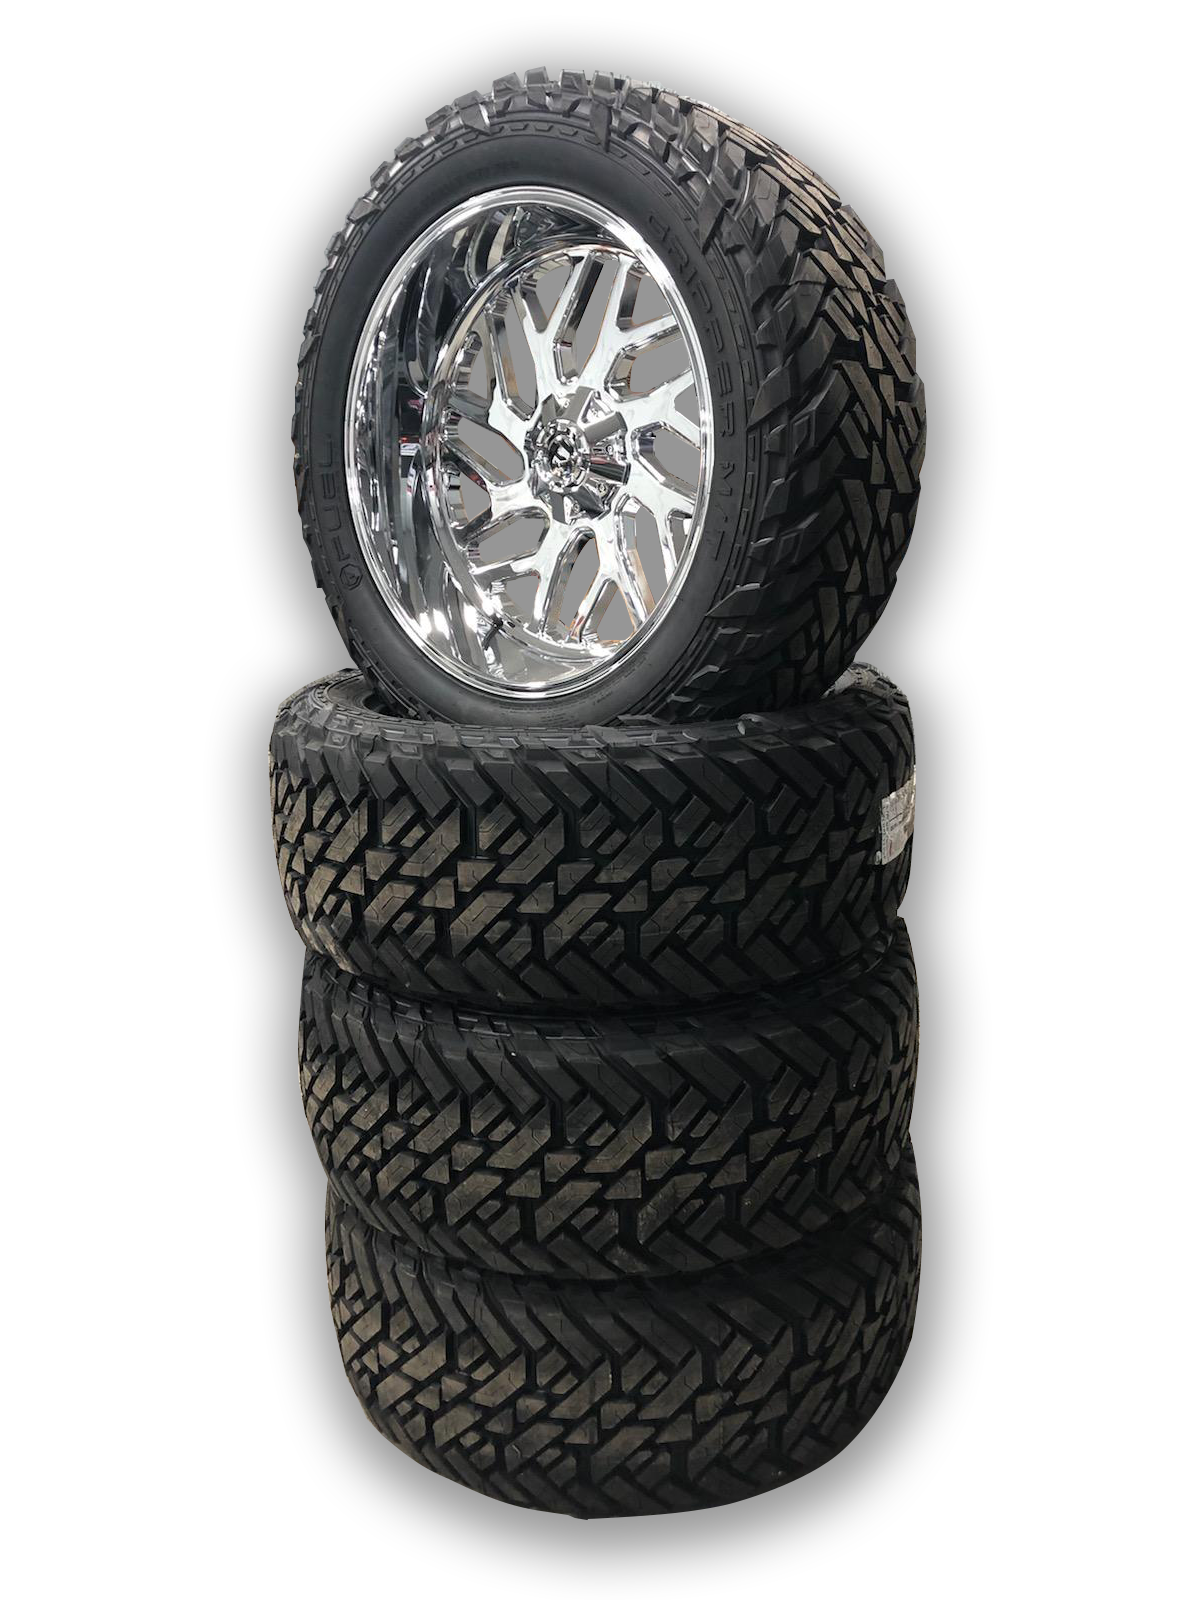 Home - 4WheelBuy - Your Offroad Wheel & Tire Headquarters